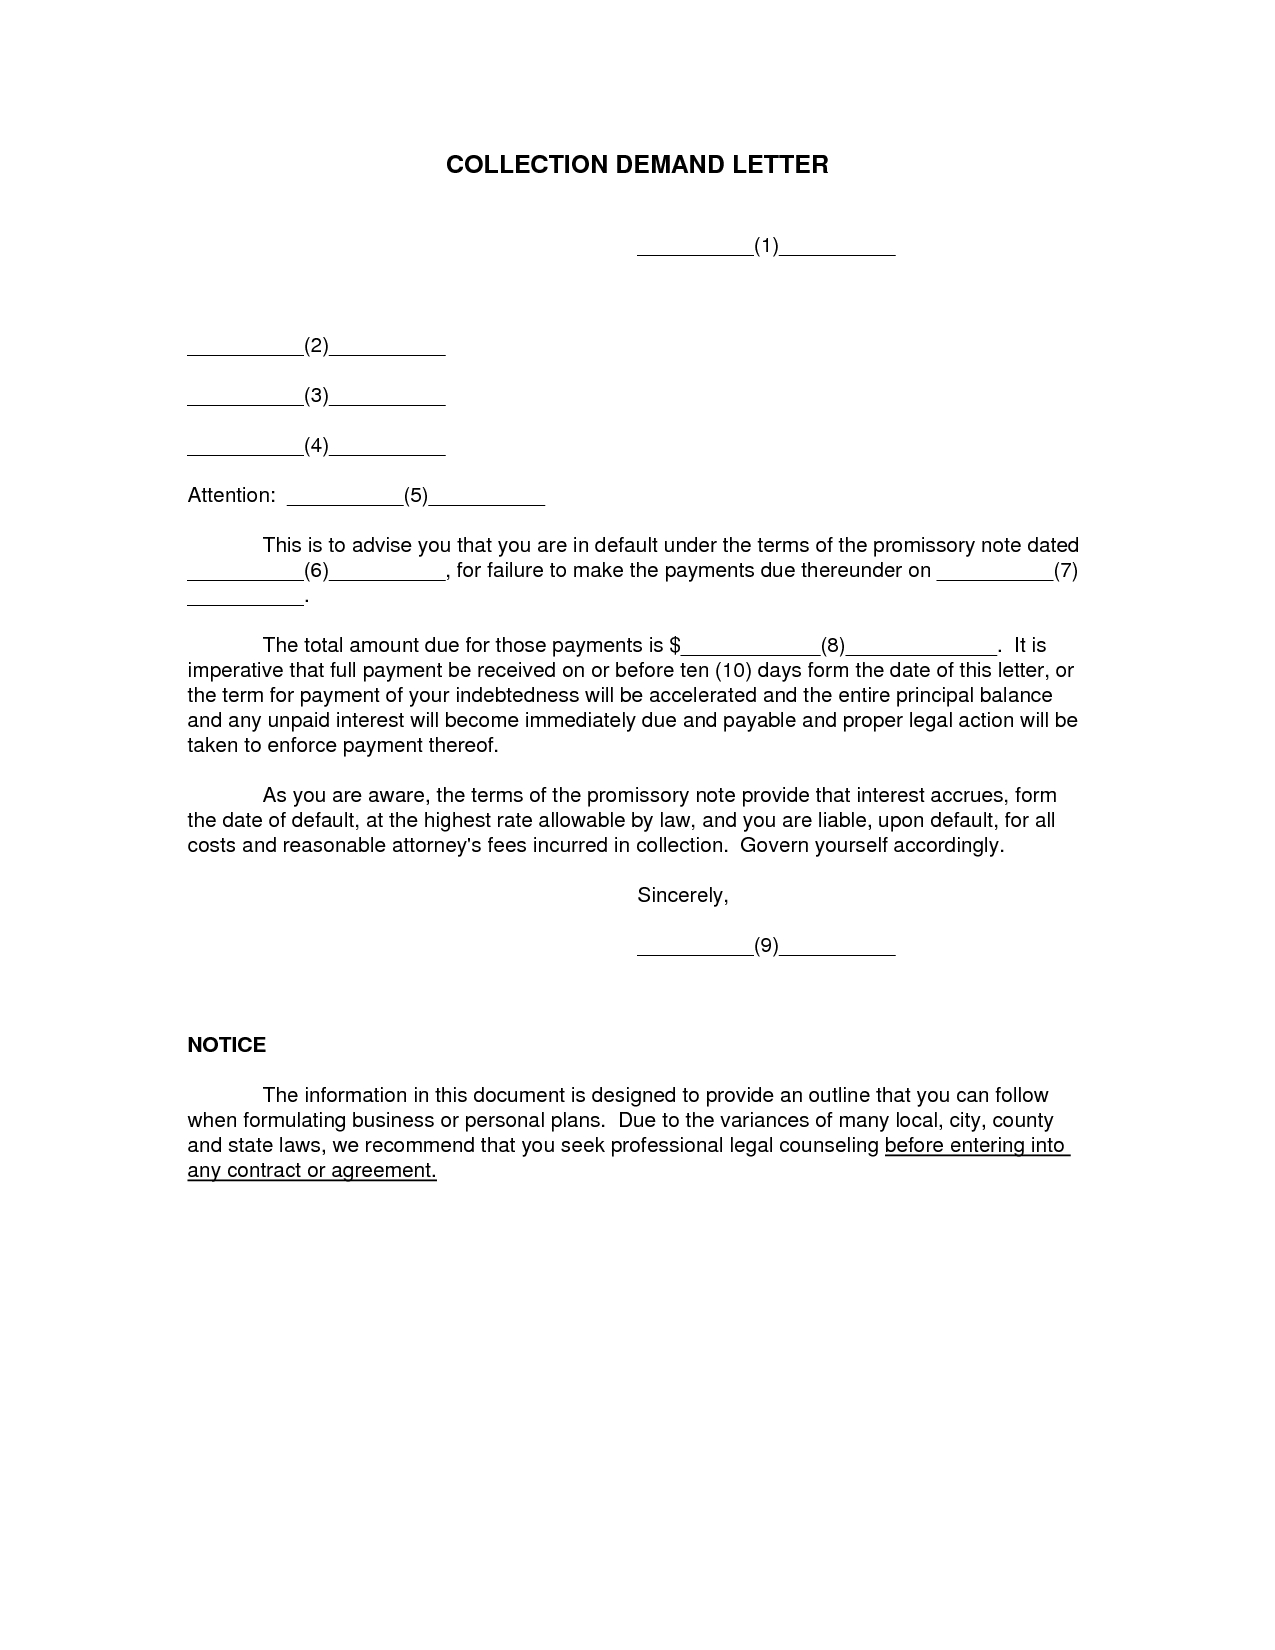 demand letter template texas example-Sample letter for business meeting confirmation of intent collection sample letter for business meeting confirmation of 11-d